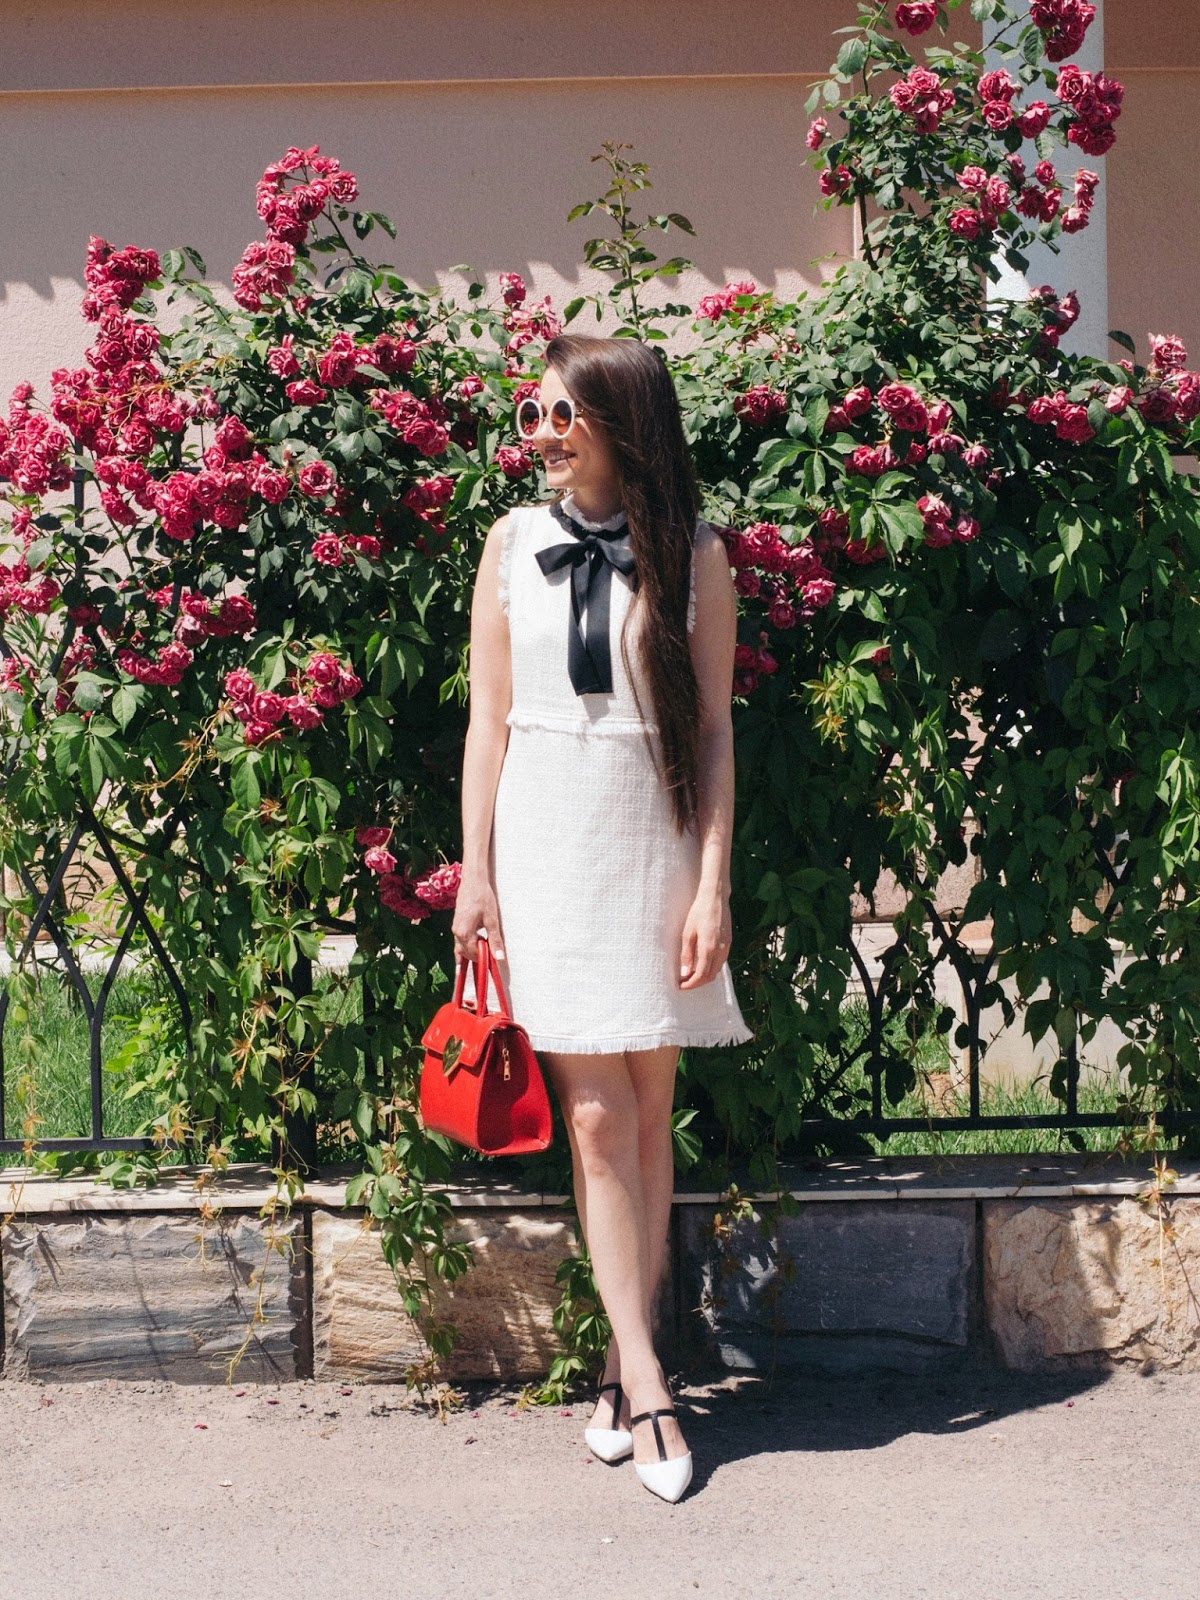 fashion blogger diyorasnotes diyora beta aline dress white dress sheen white shoes red bag feminine outfit oversized sunglasses